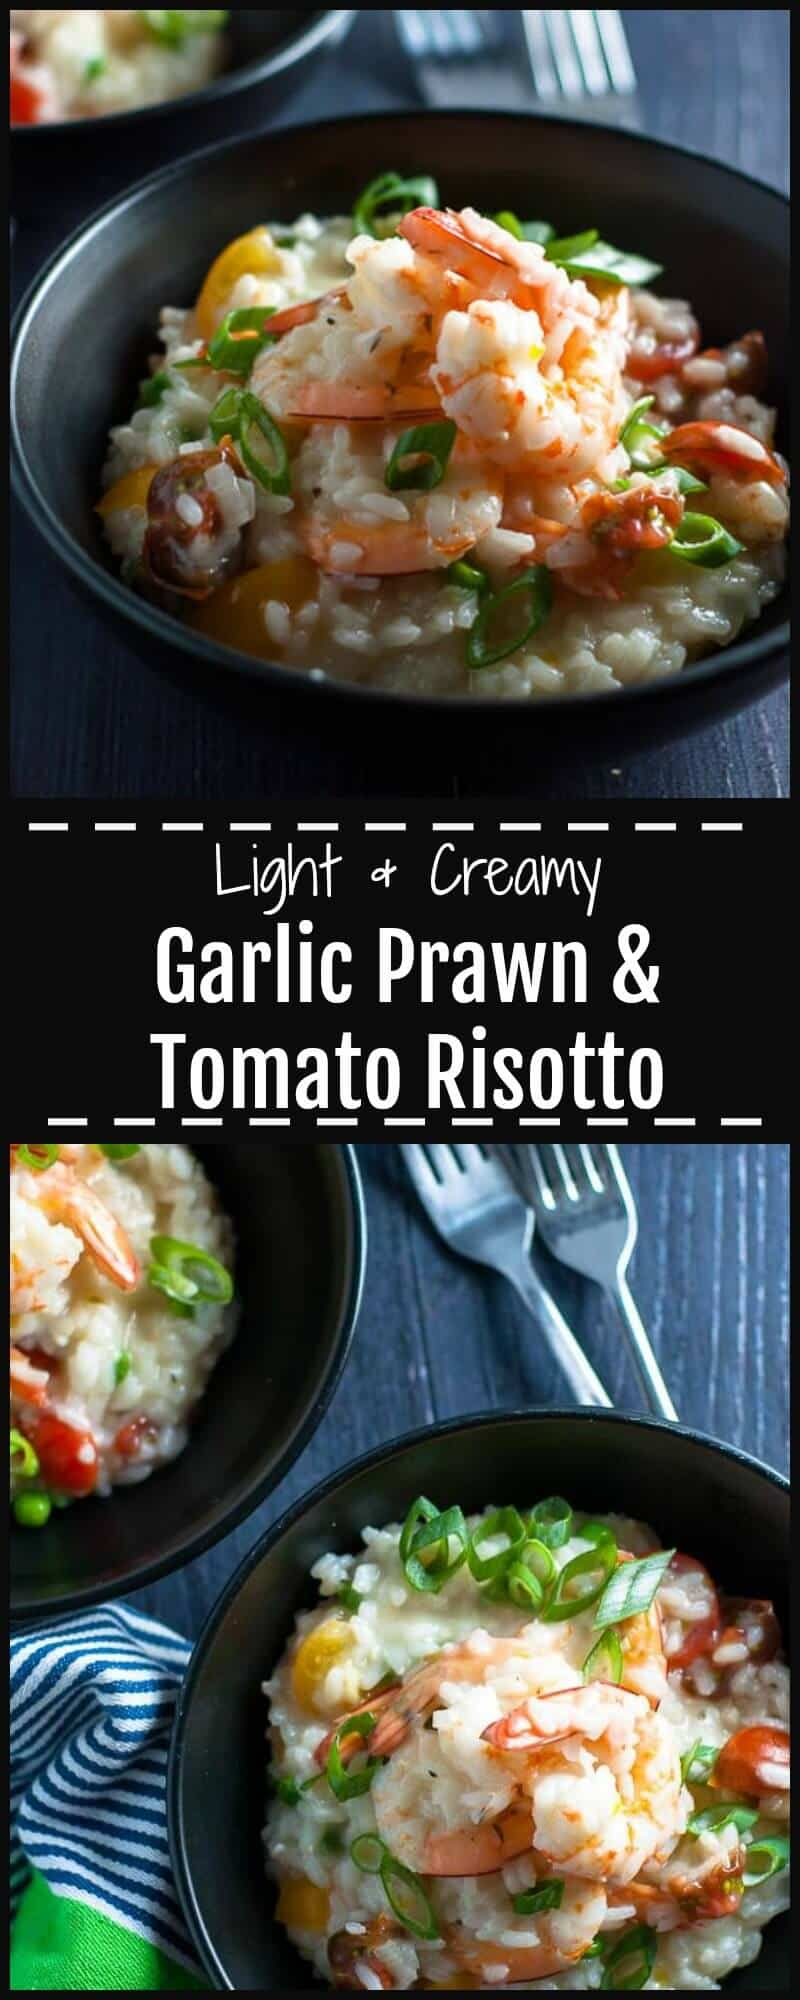 This Garlic Prawn and Tomato Risotto is light and creamy with big juicy prawns, bold garlic and rich colourful cherry tomatoes.  It's an easy and warming bowl of seaside seafood on a cool winters night.